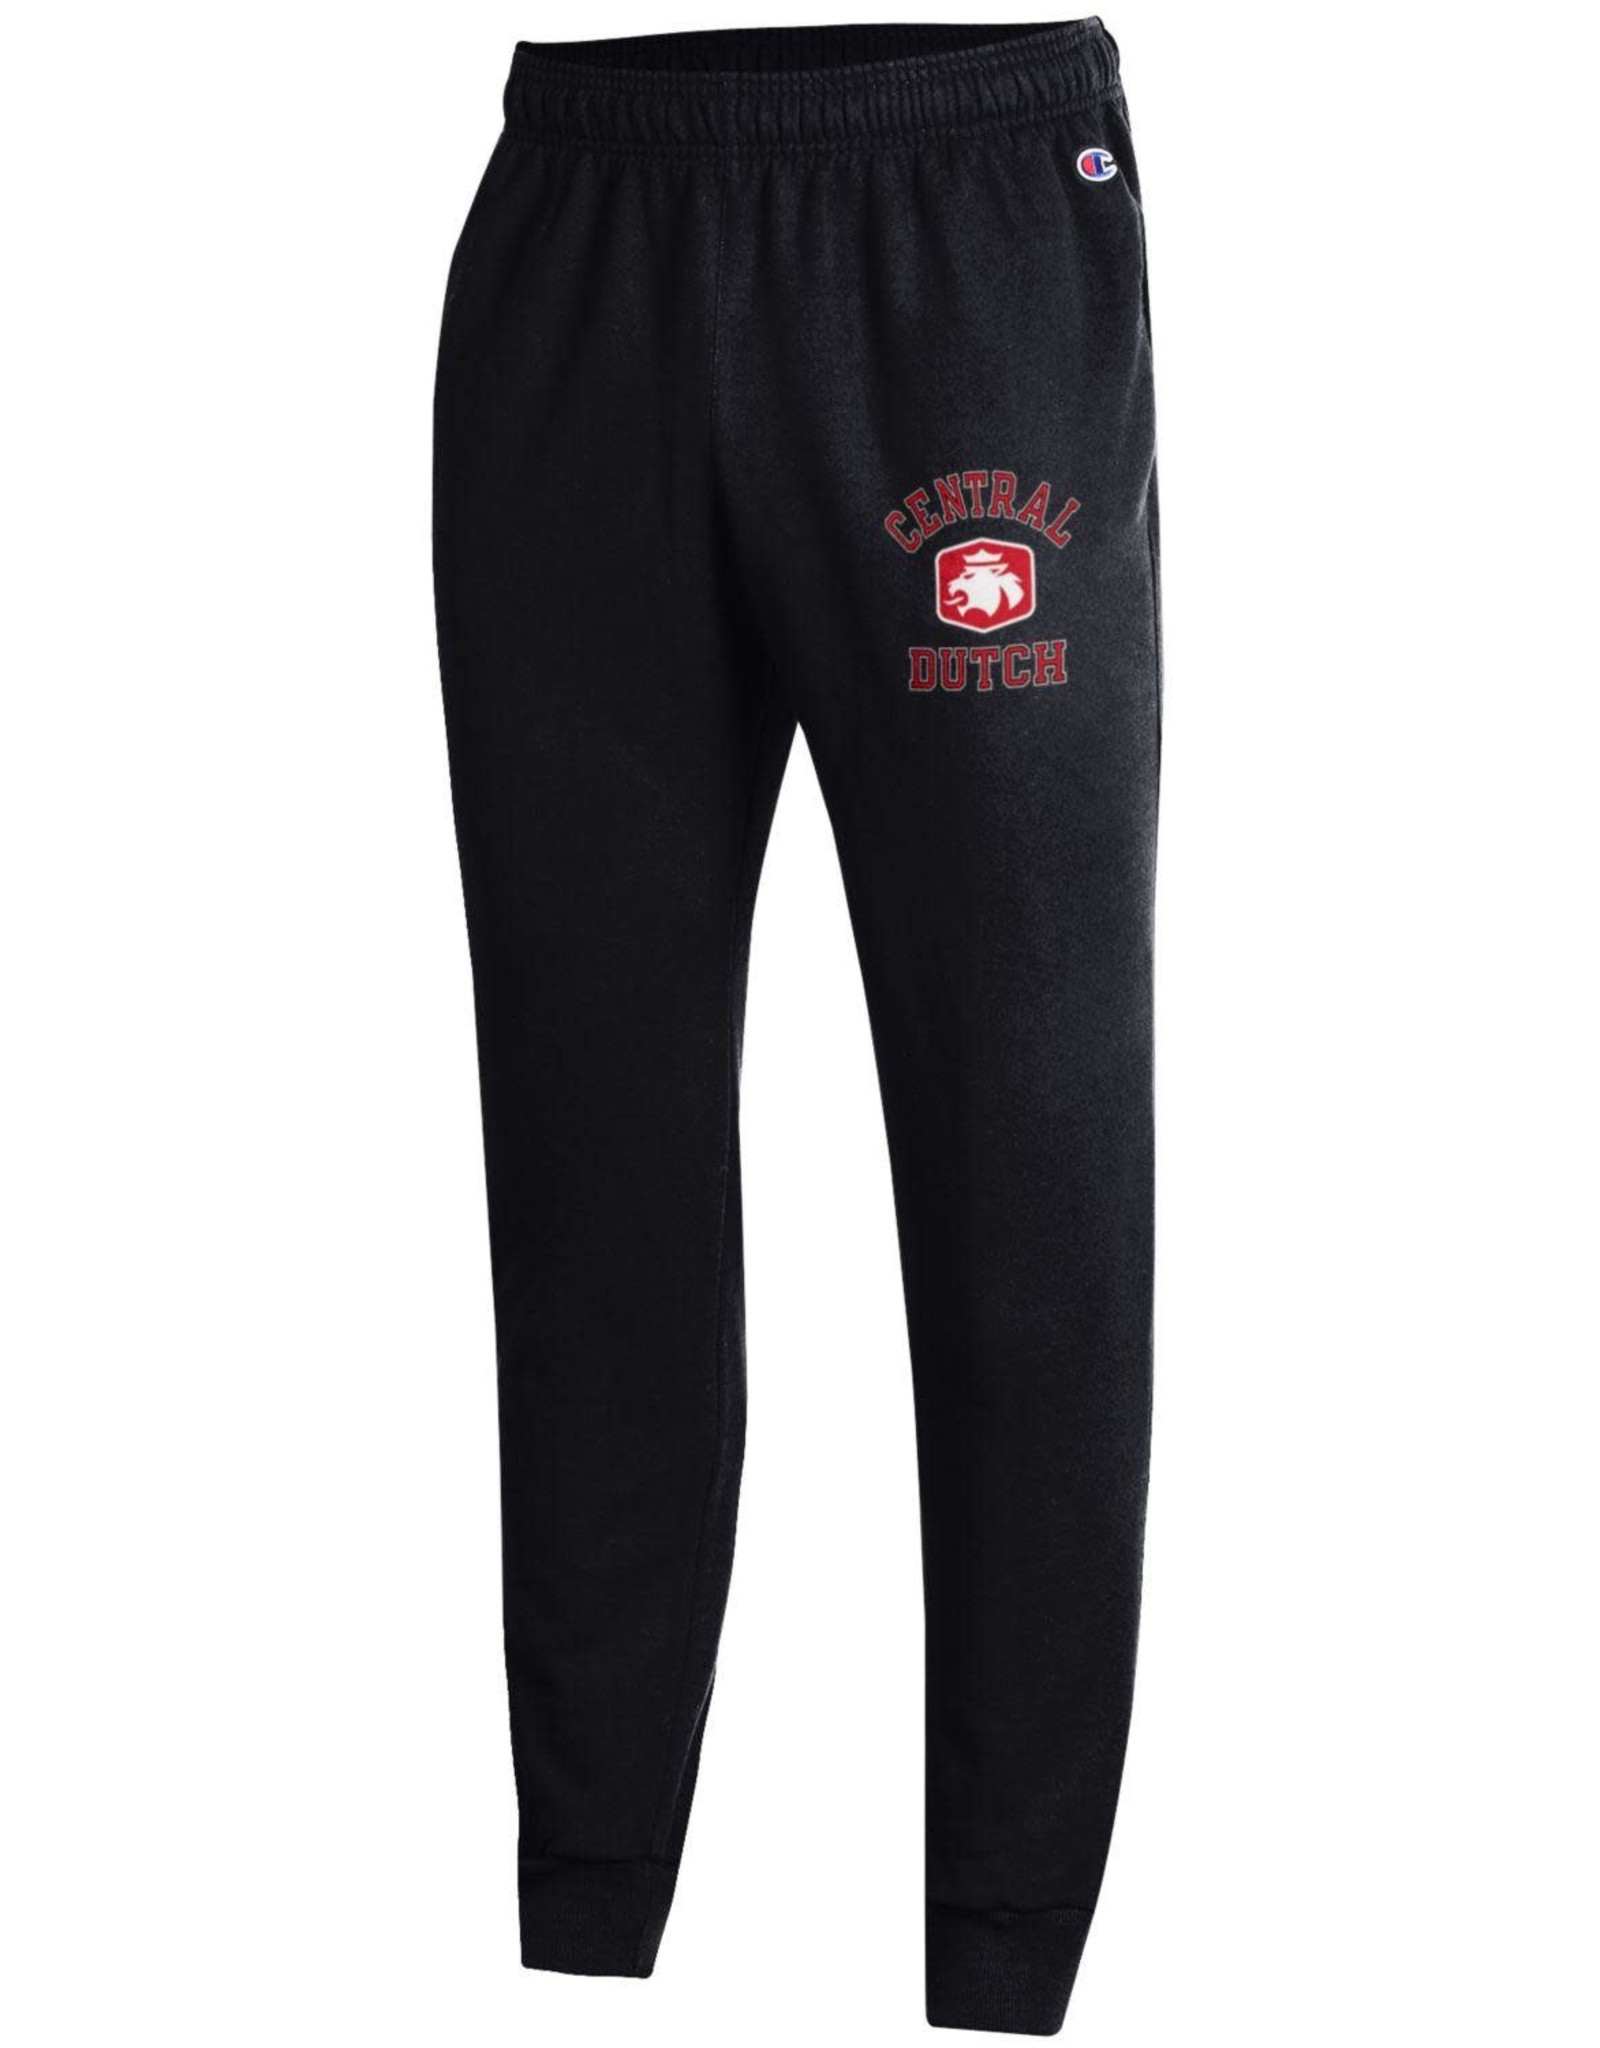 CHAMP Champion Power Blend Fleece Jogger Black